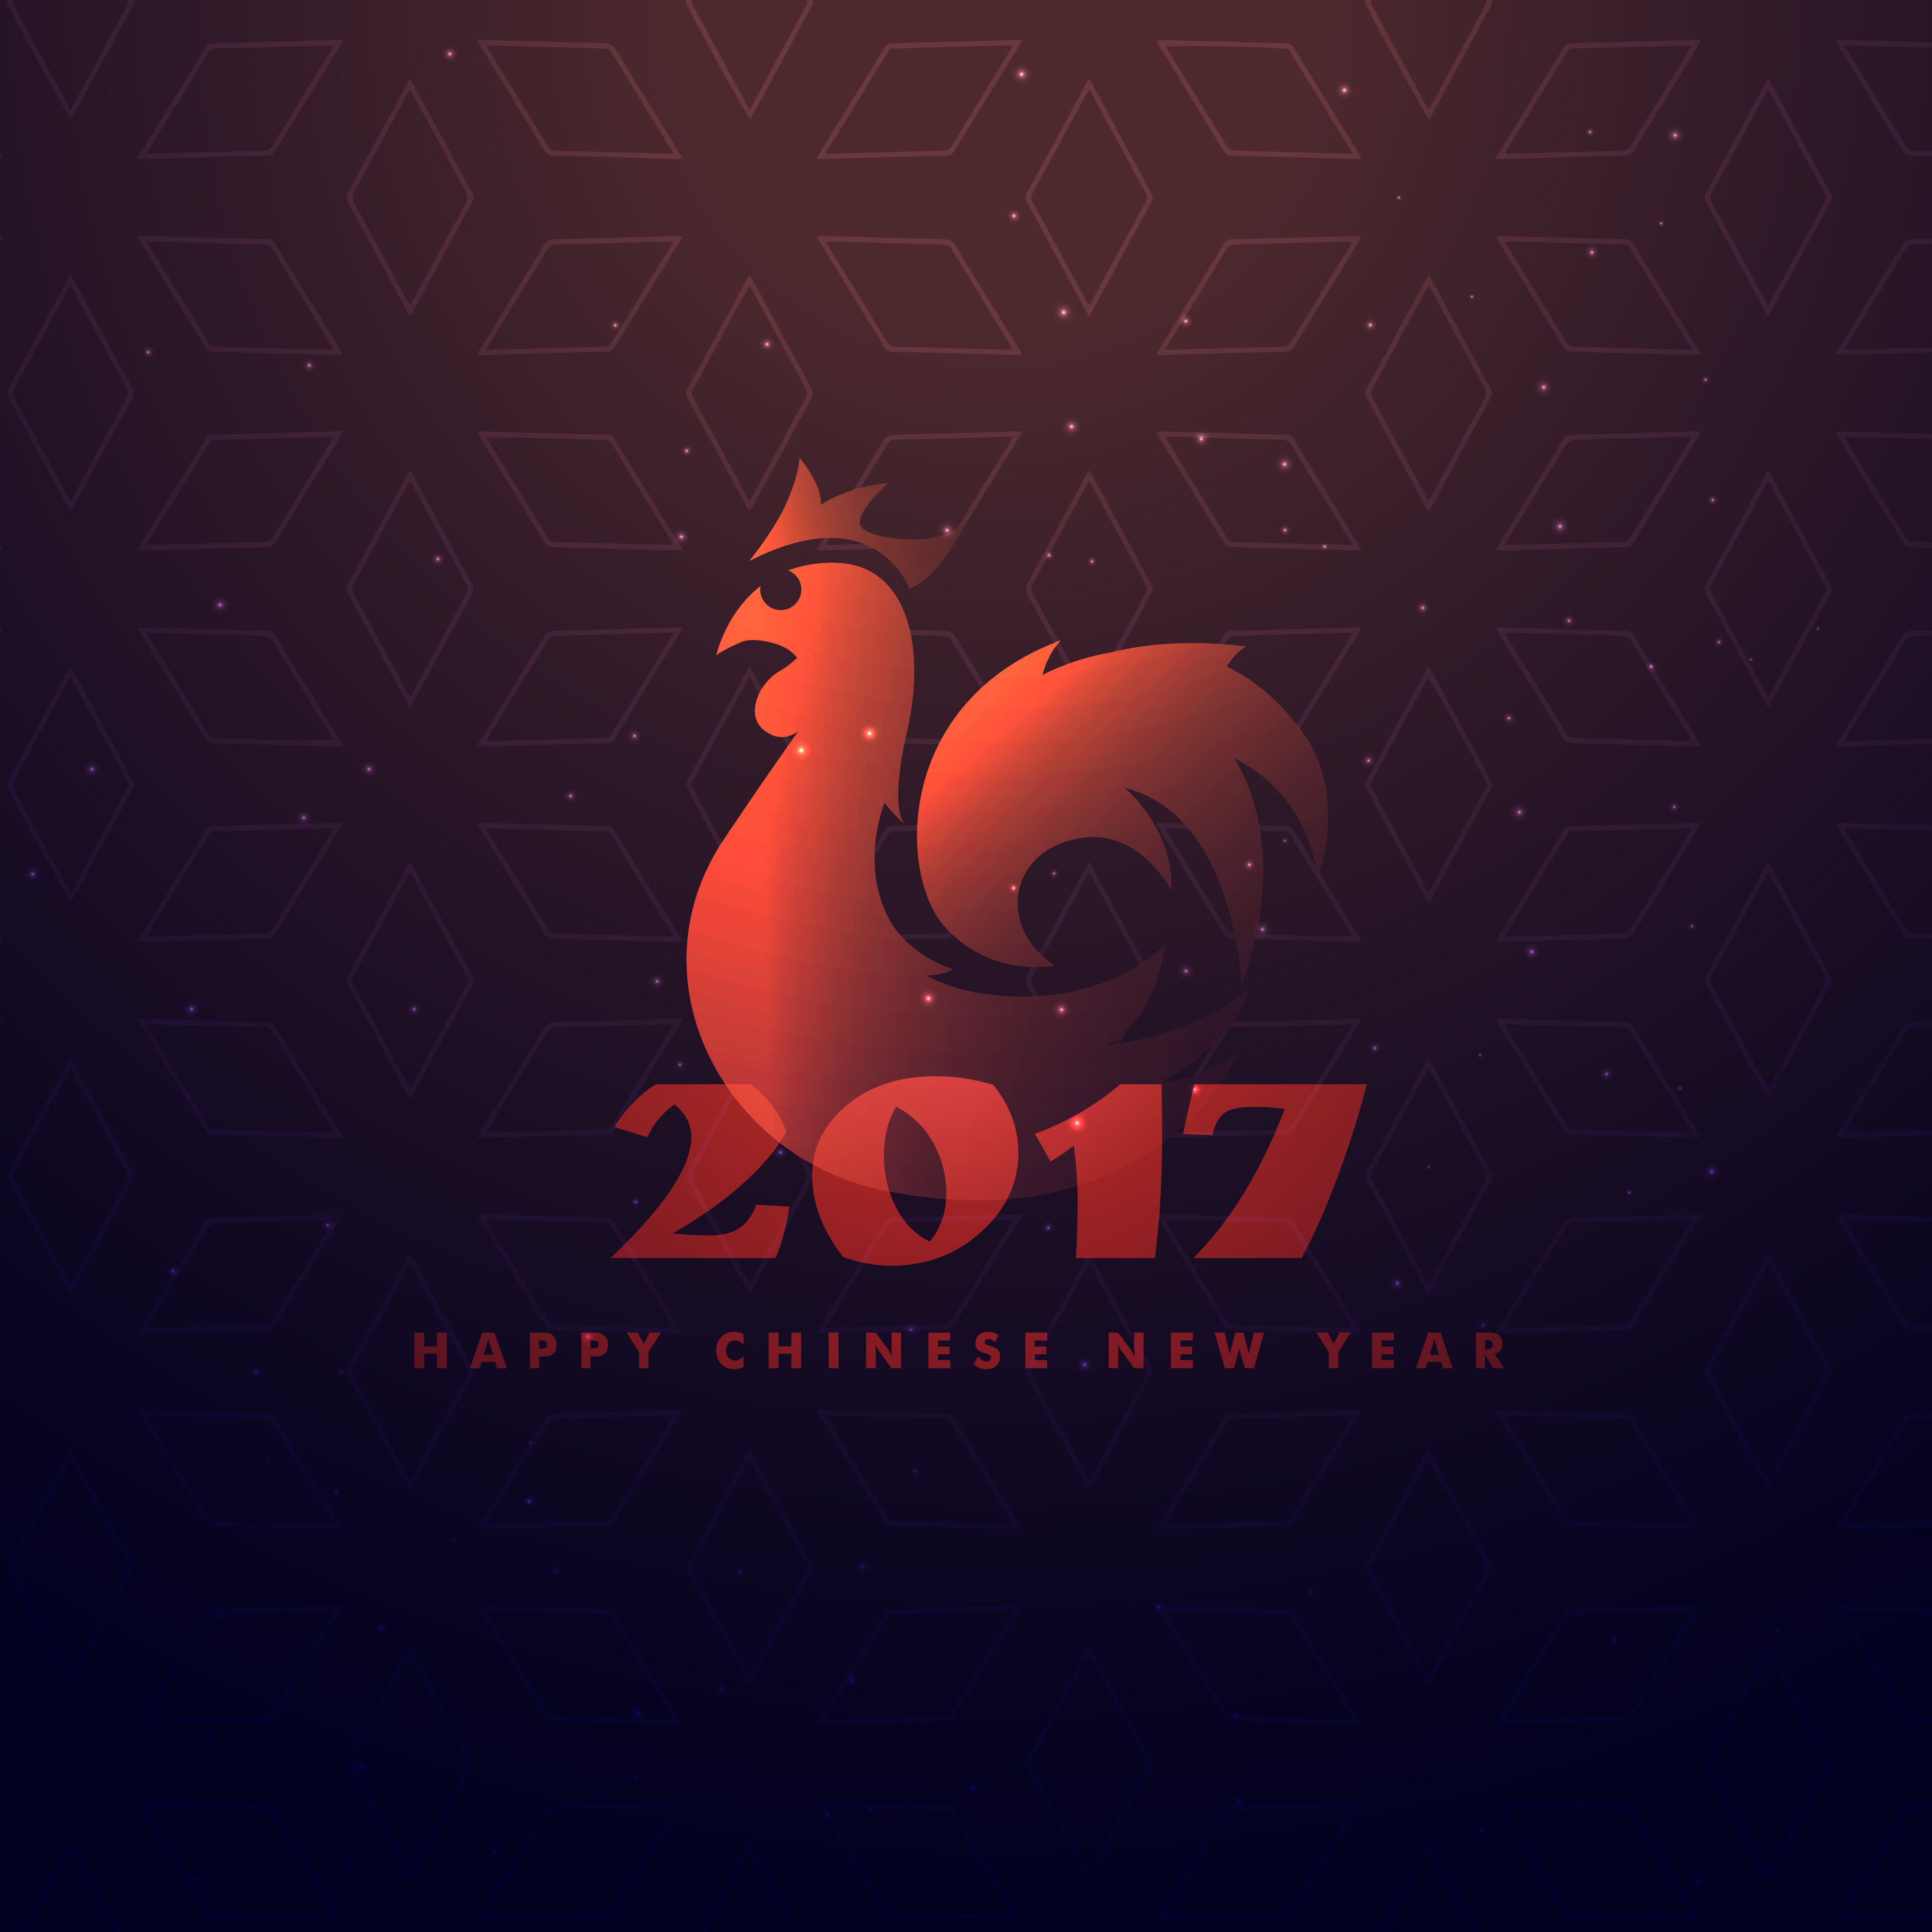 Chinese New Year 2017 Free Vector Art 7869 Free Downloads